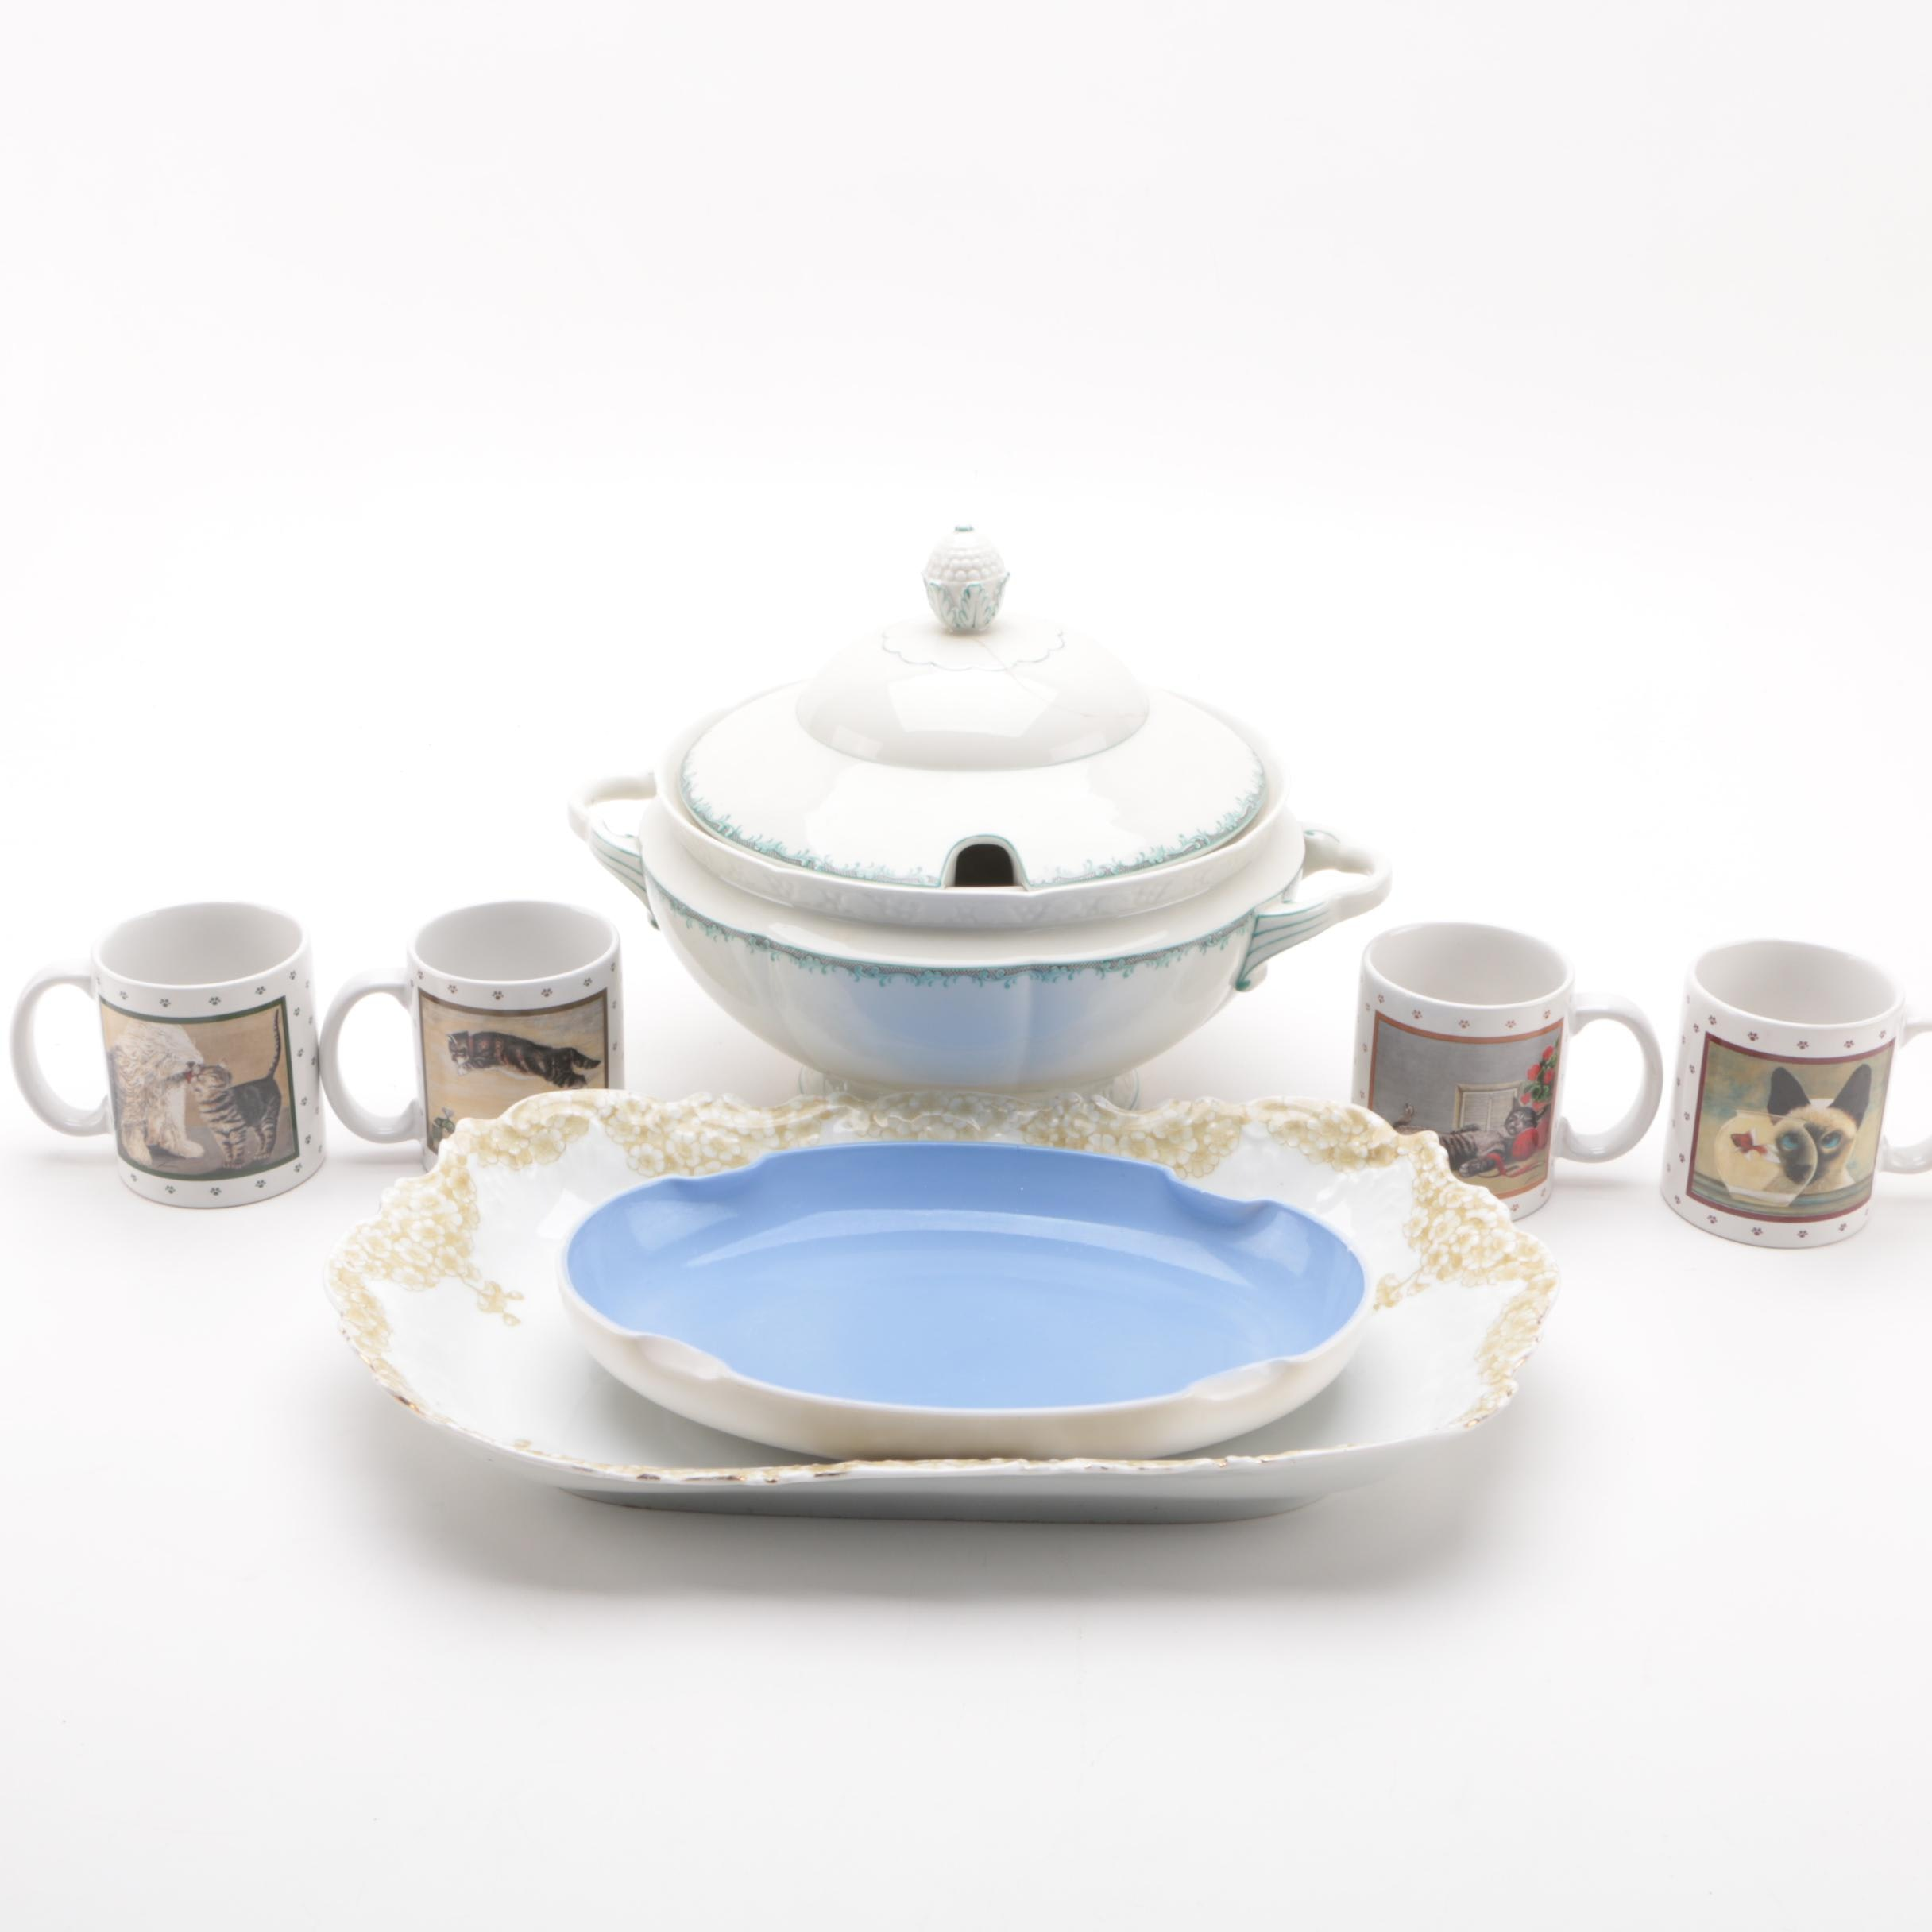 Vintage and Antique Marx & Gutherz, Tettau and Other Porcelain Tableware